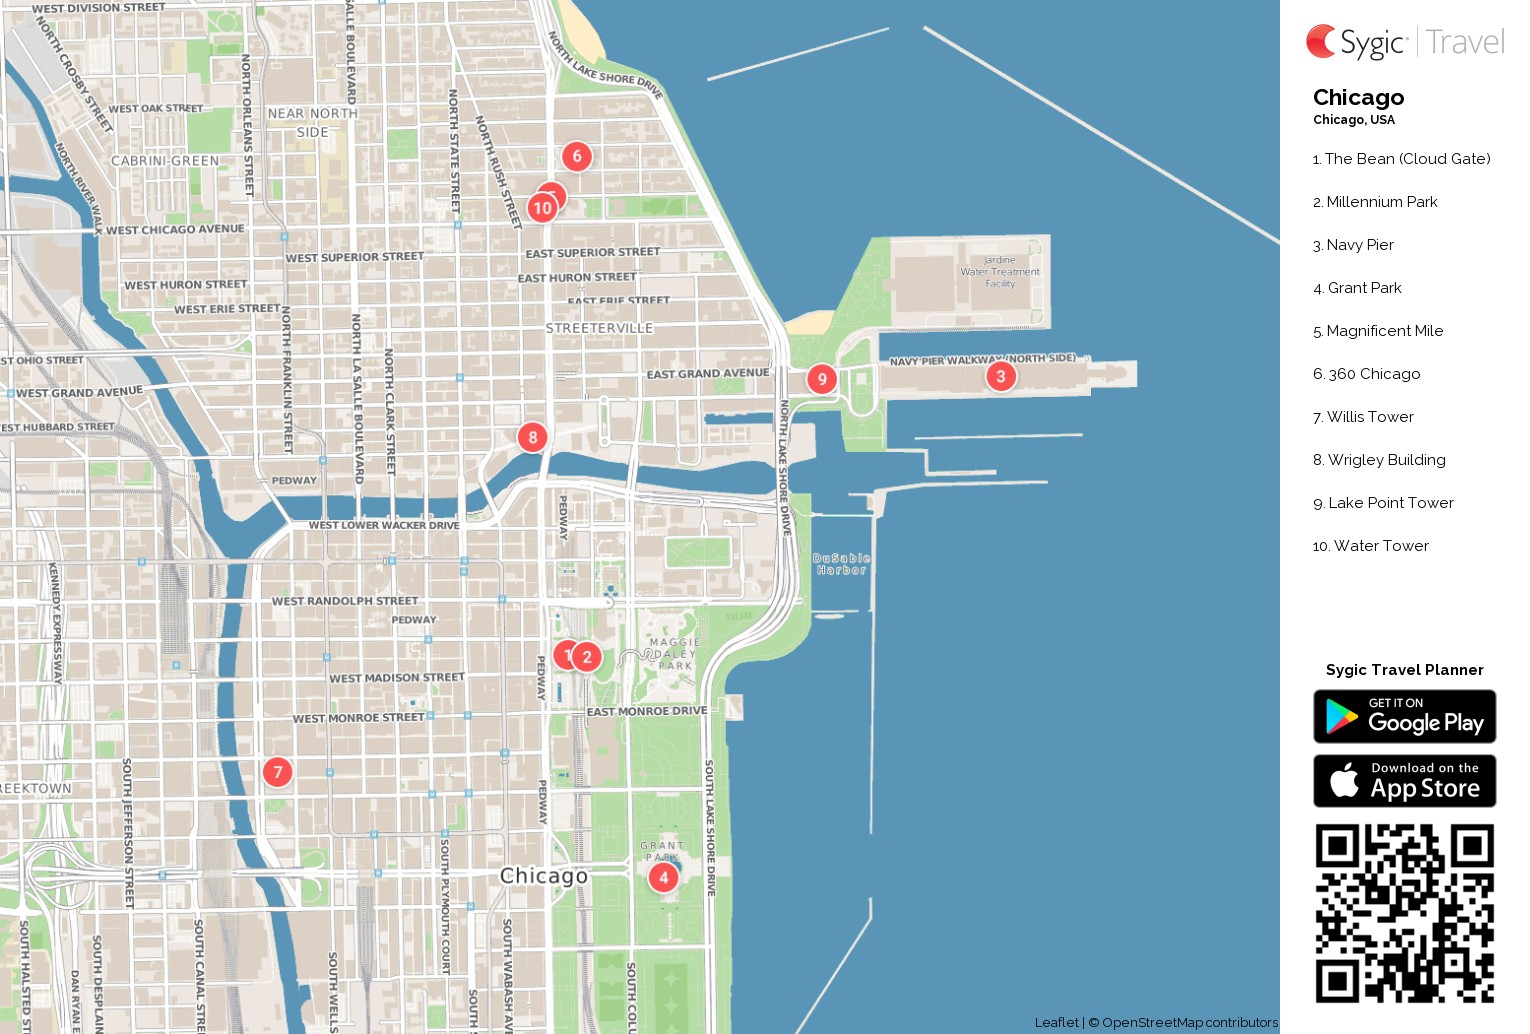 Map Of Chicago Printable Tourist 87318 Png Filetype | D1Softball - Chicago Tourist Map Printable